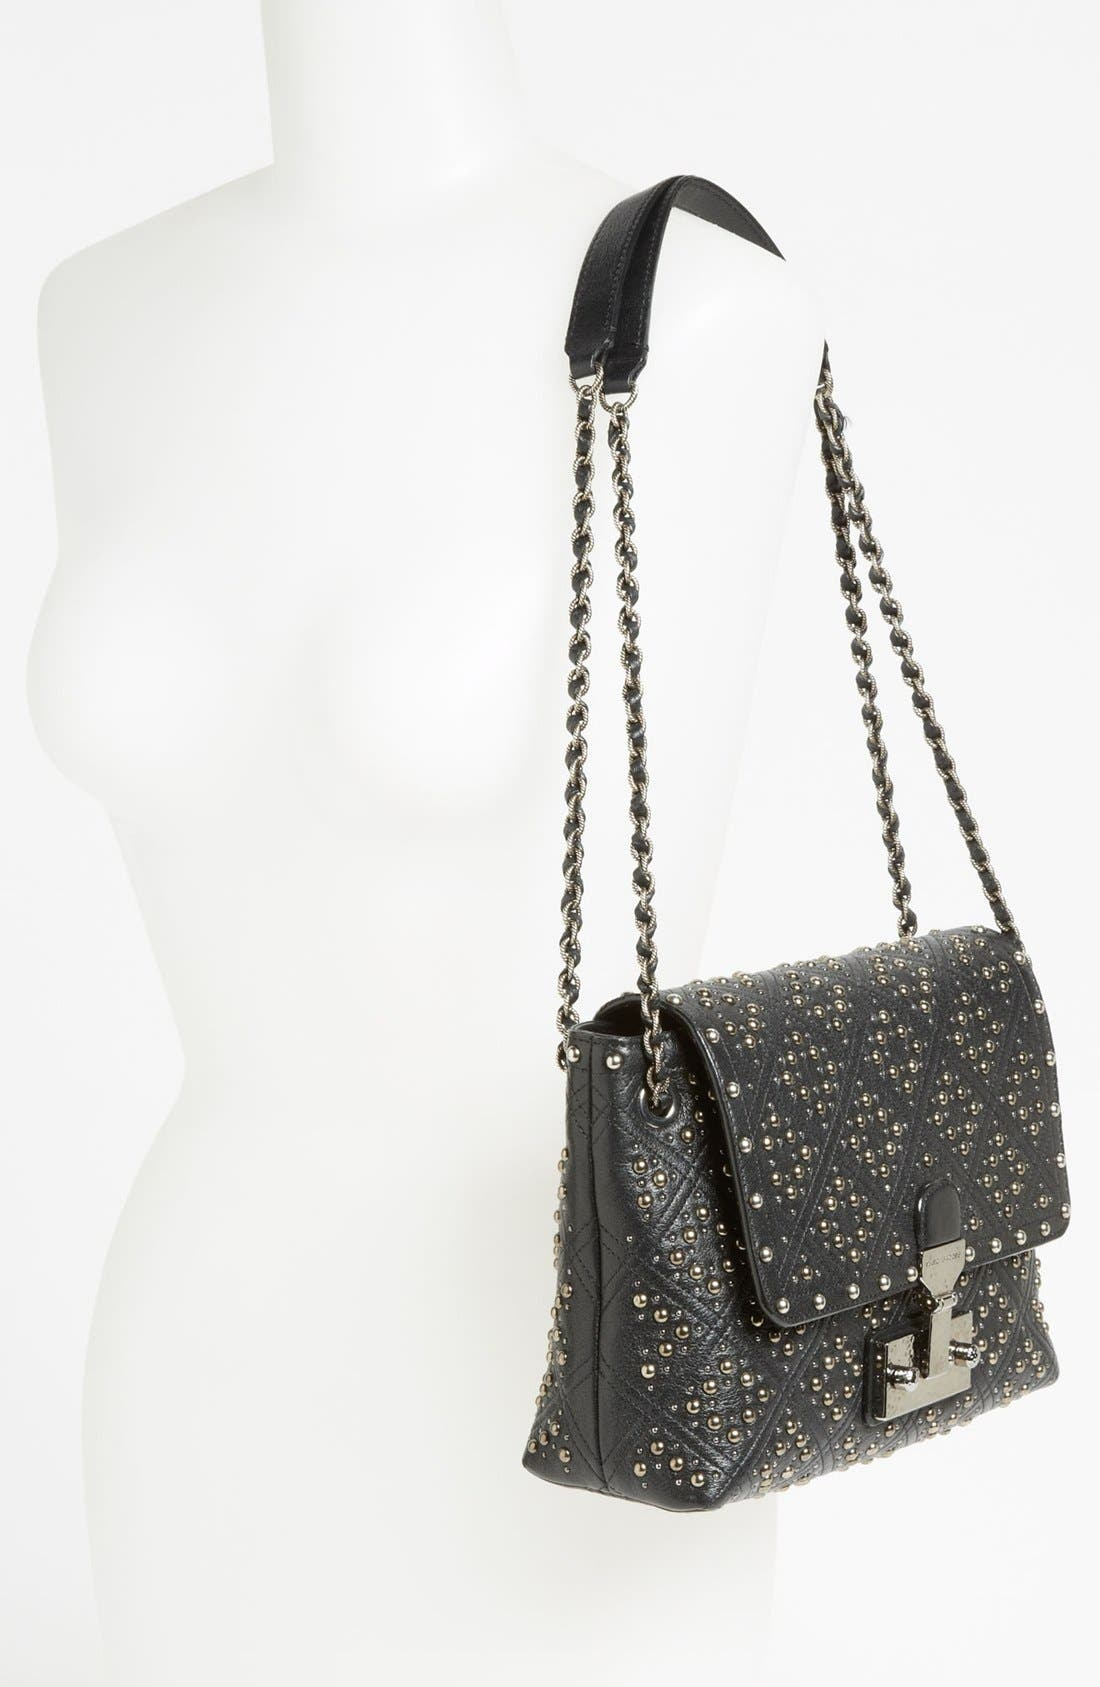 'Baroque Studs Single - Large' Leather Crossbody Bag,                             Alternate thumbnail 2, color,                             Black/Antique Silver